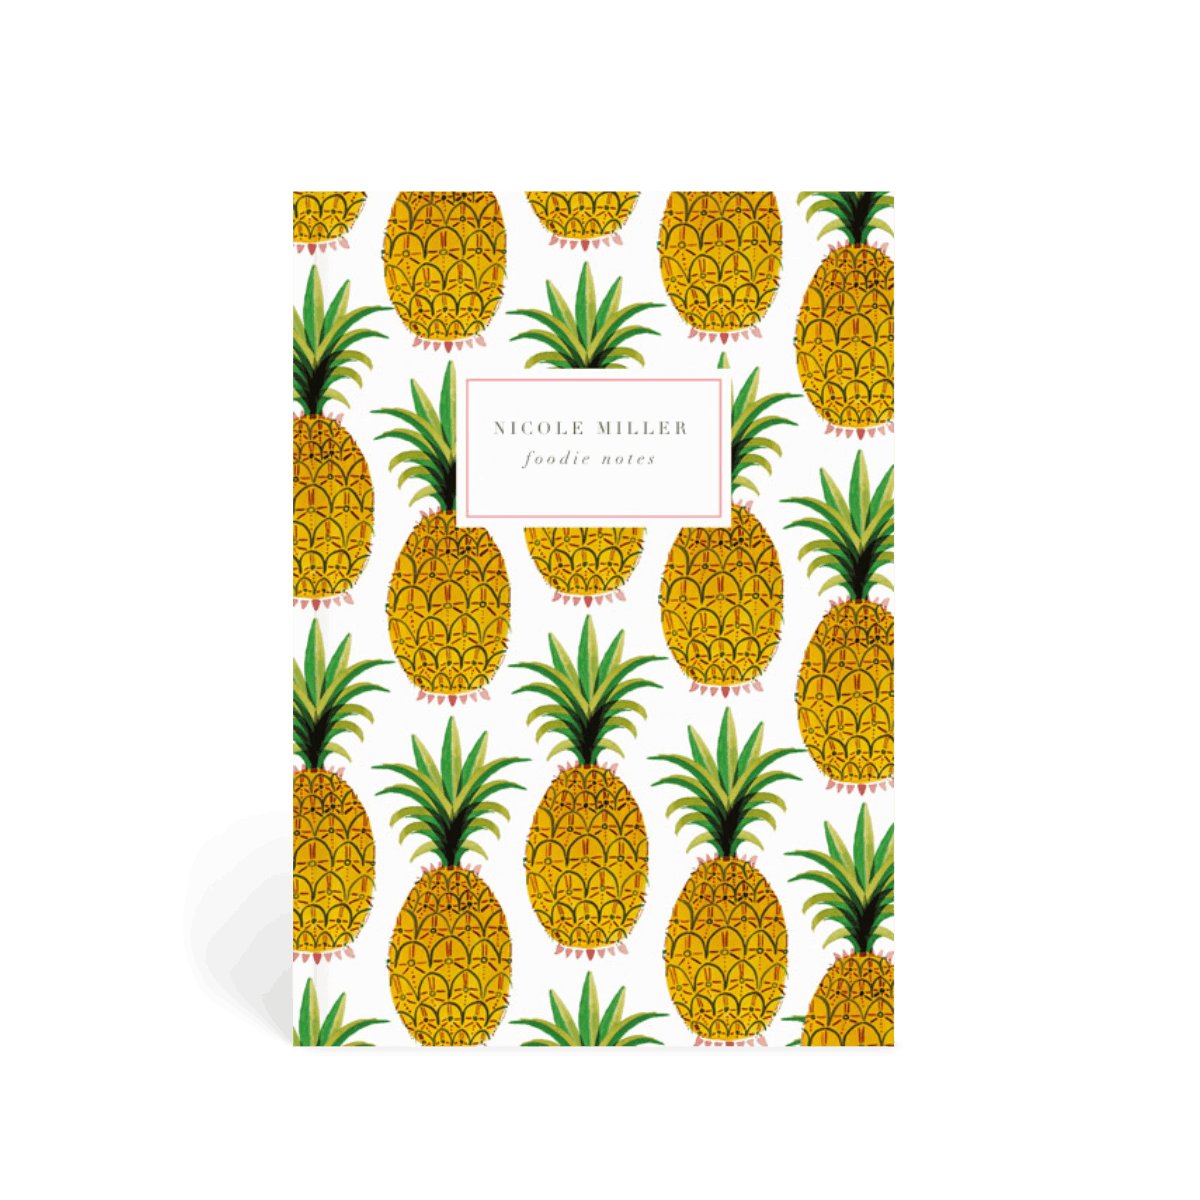 Https%3a%2f%2fwww.papier.com%2fproduct image%2f56561%2f25%2fpineapple 13583 front 1542369900.png?ixlib=rb 1.1